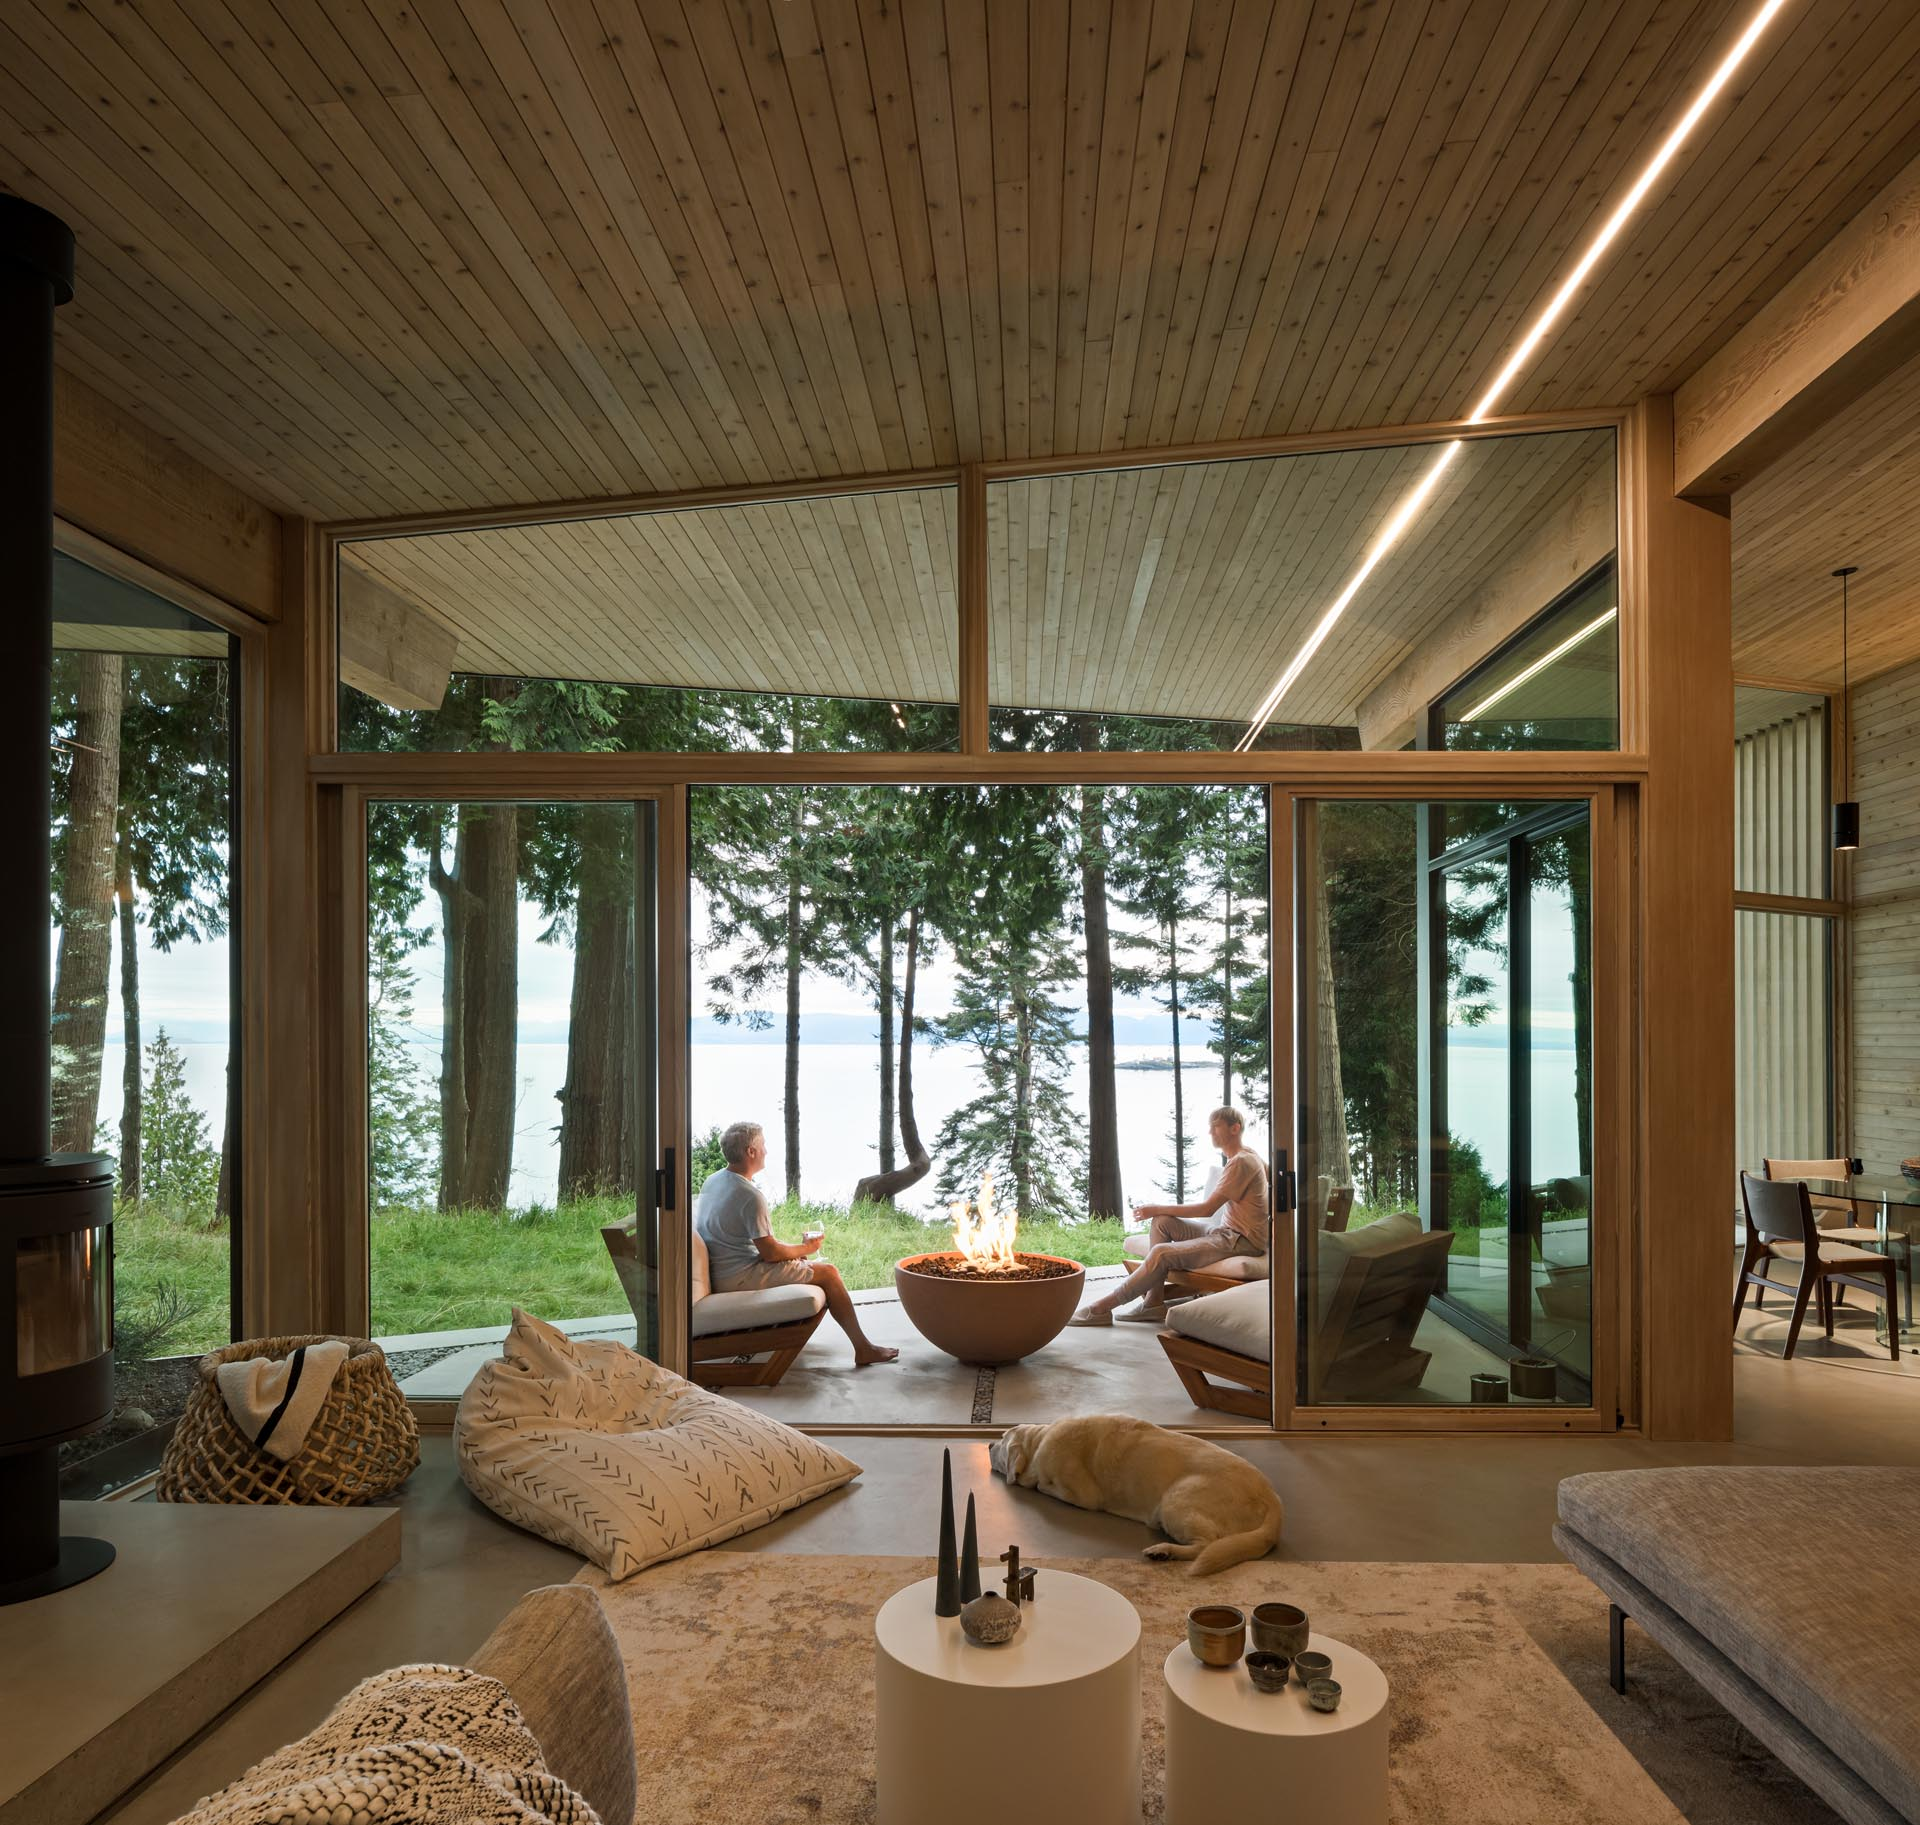 A wall of glass with sliding doors connects the living room to a covered patio that's furnished with chairs and a fire bowl, and has water views.